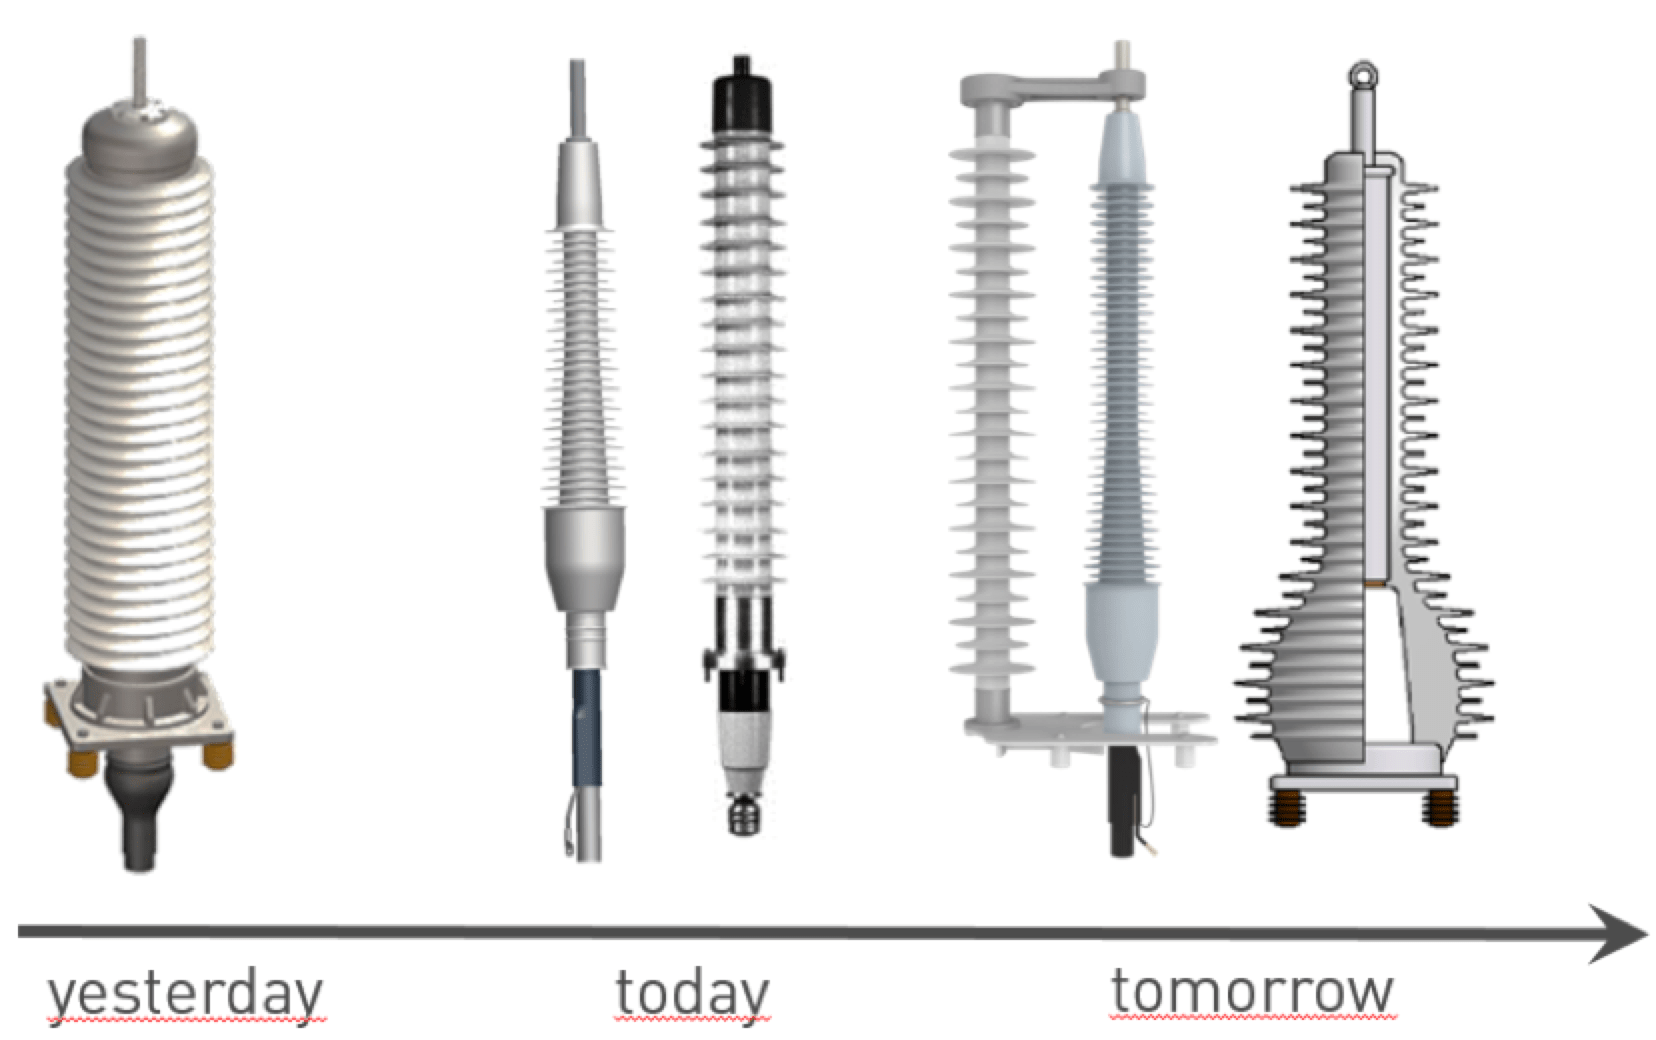 Fig. 9: Evolution of cable terminations. cable accessories Developing 'Next Generation' Cable Accessories Screen Shot 2016 08 11 at 15